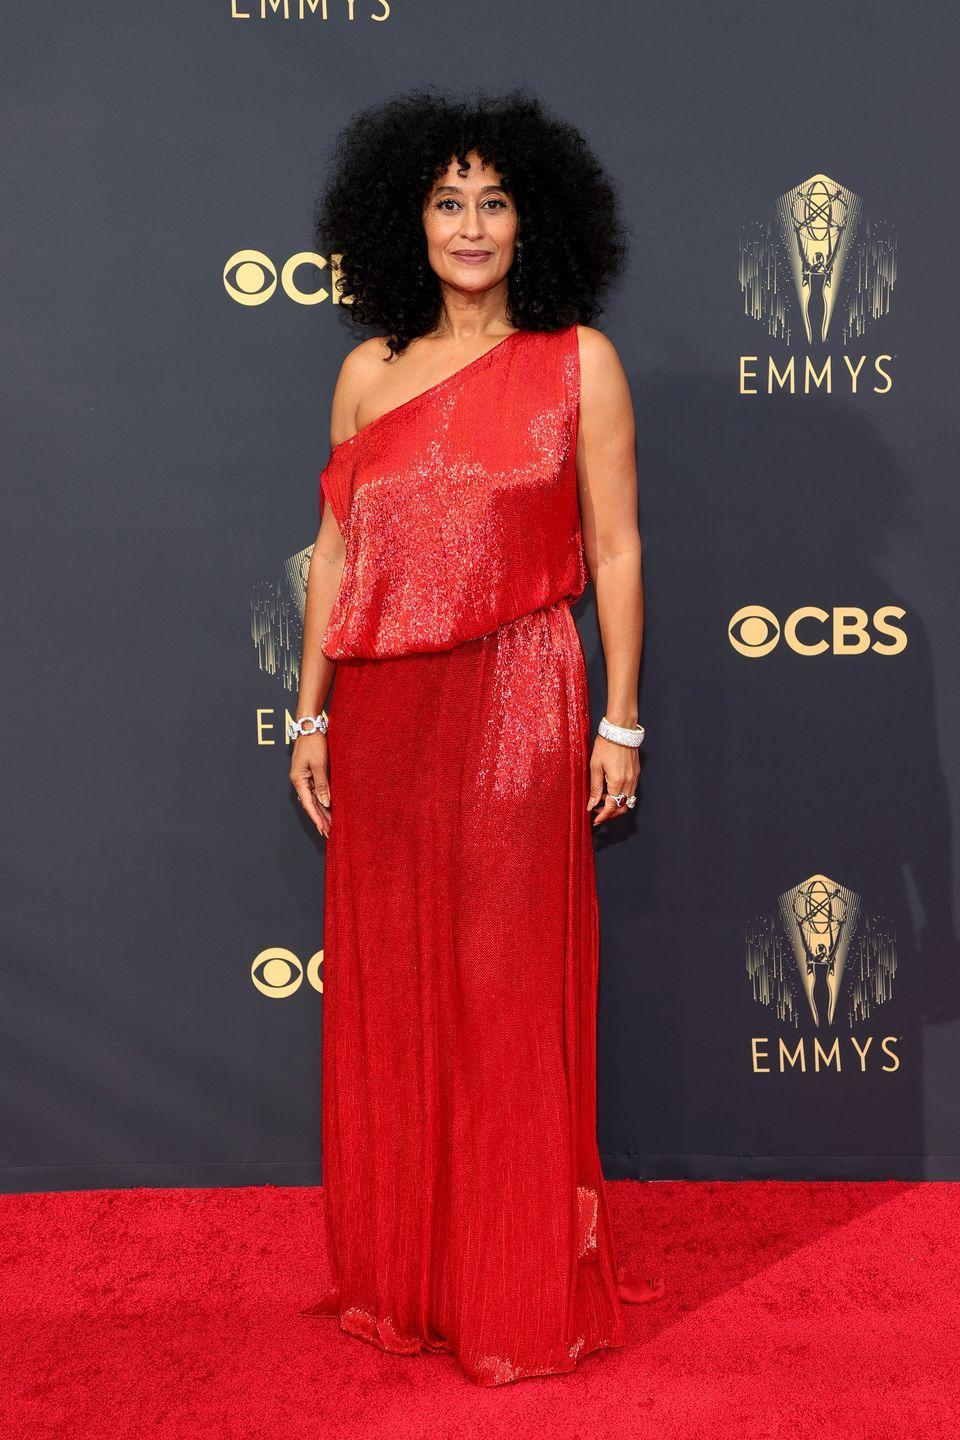 <p><strong>What:</strong> Valentino Haute Couture</p><p><strong>Why: </strong>Ellis Ross is a '70s inspired goddess in a flowing, sparkling one-shoulder creation in signature Valentino red. It's a silhouette reminiscent of Studio 54, through the lens of Haute Couture.</p>